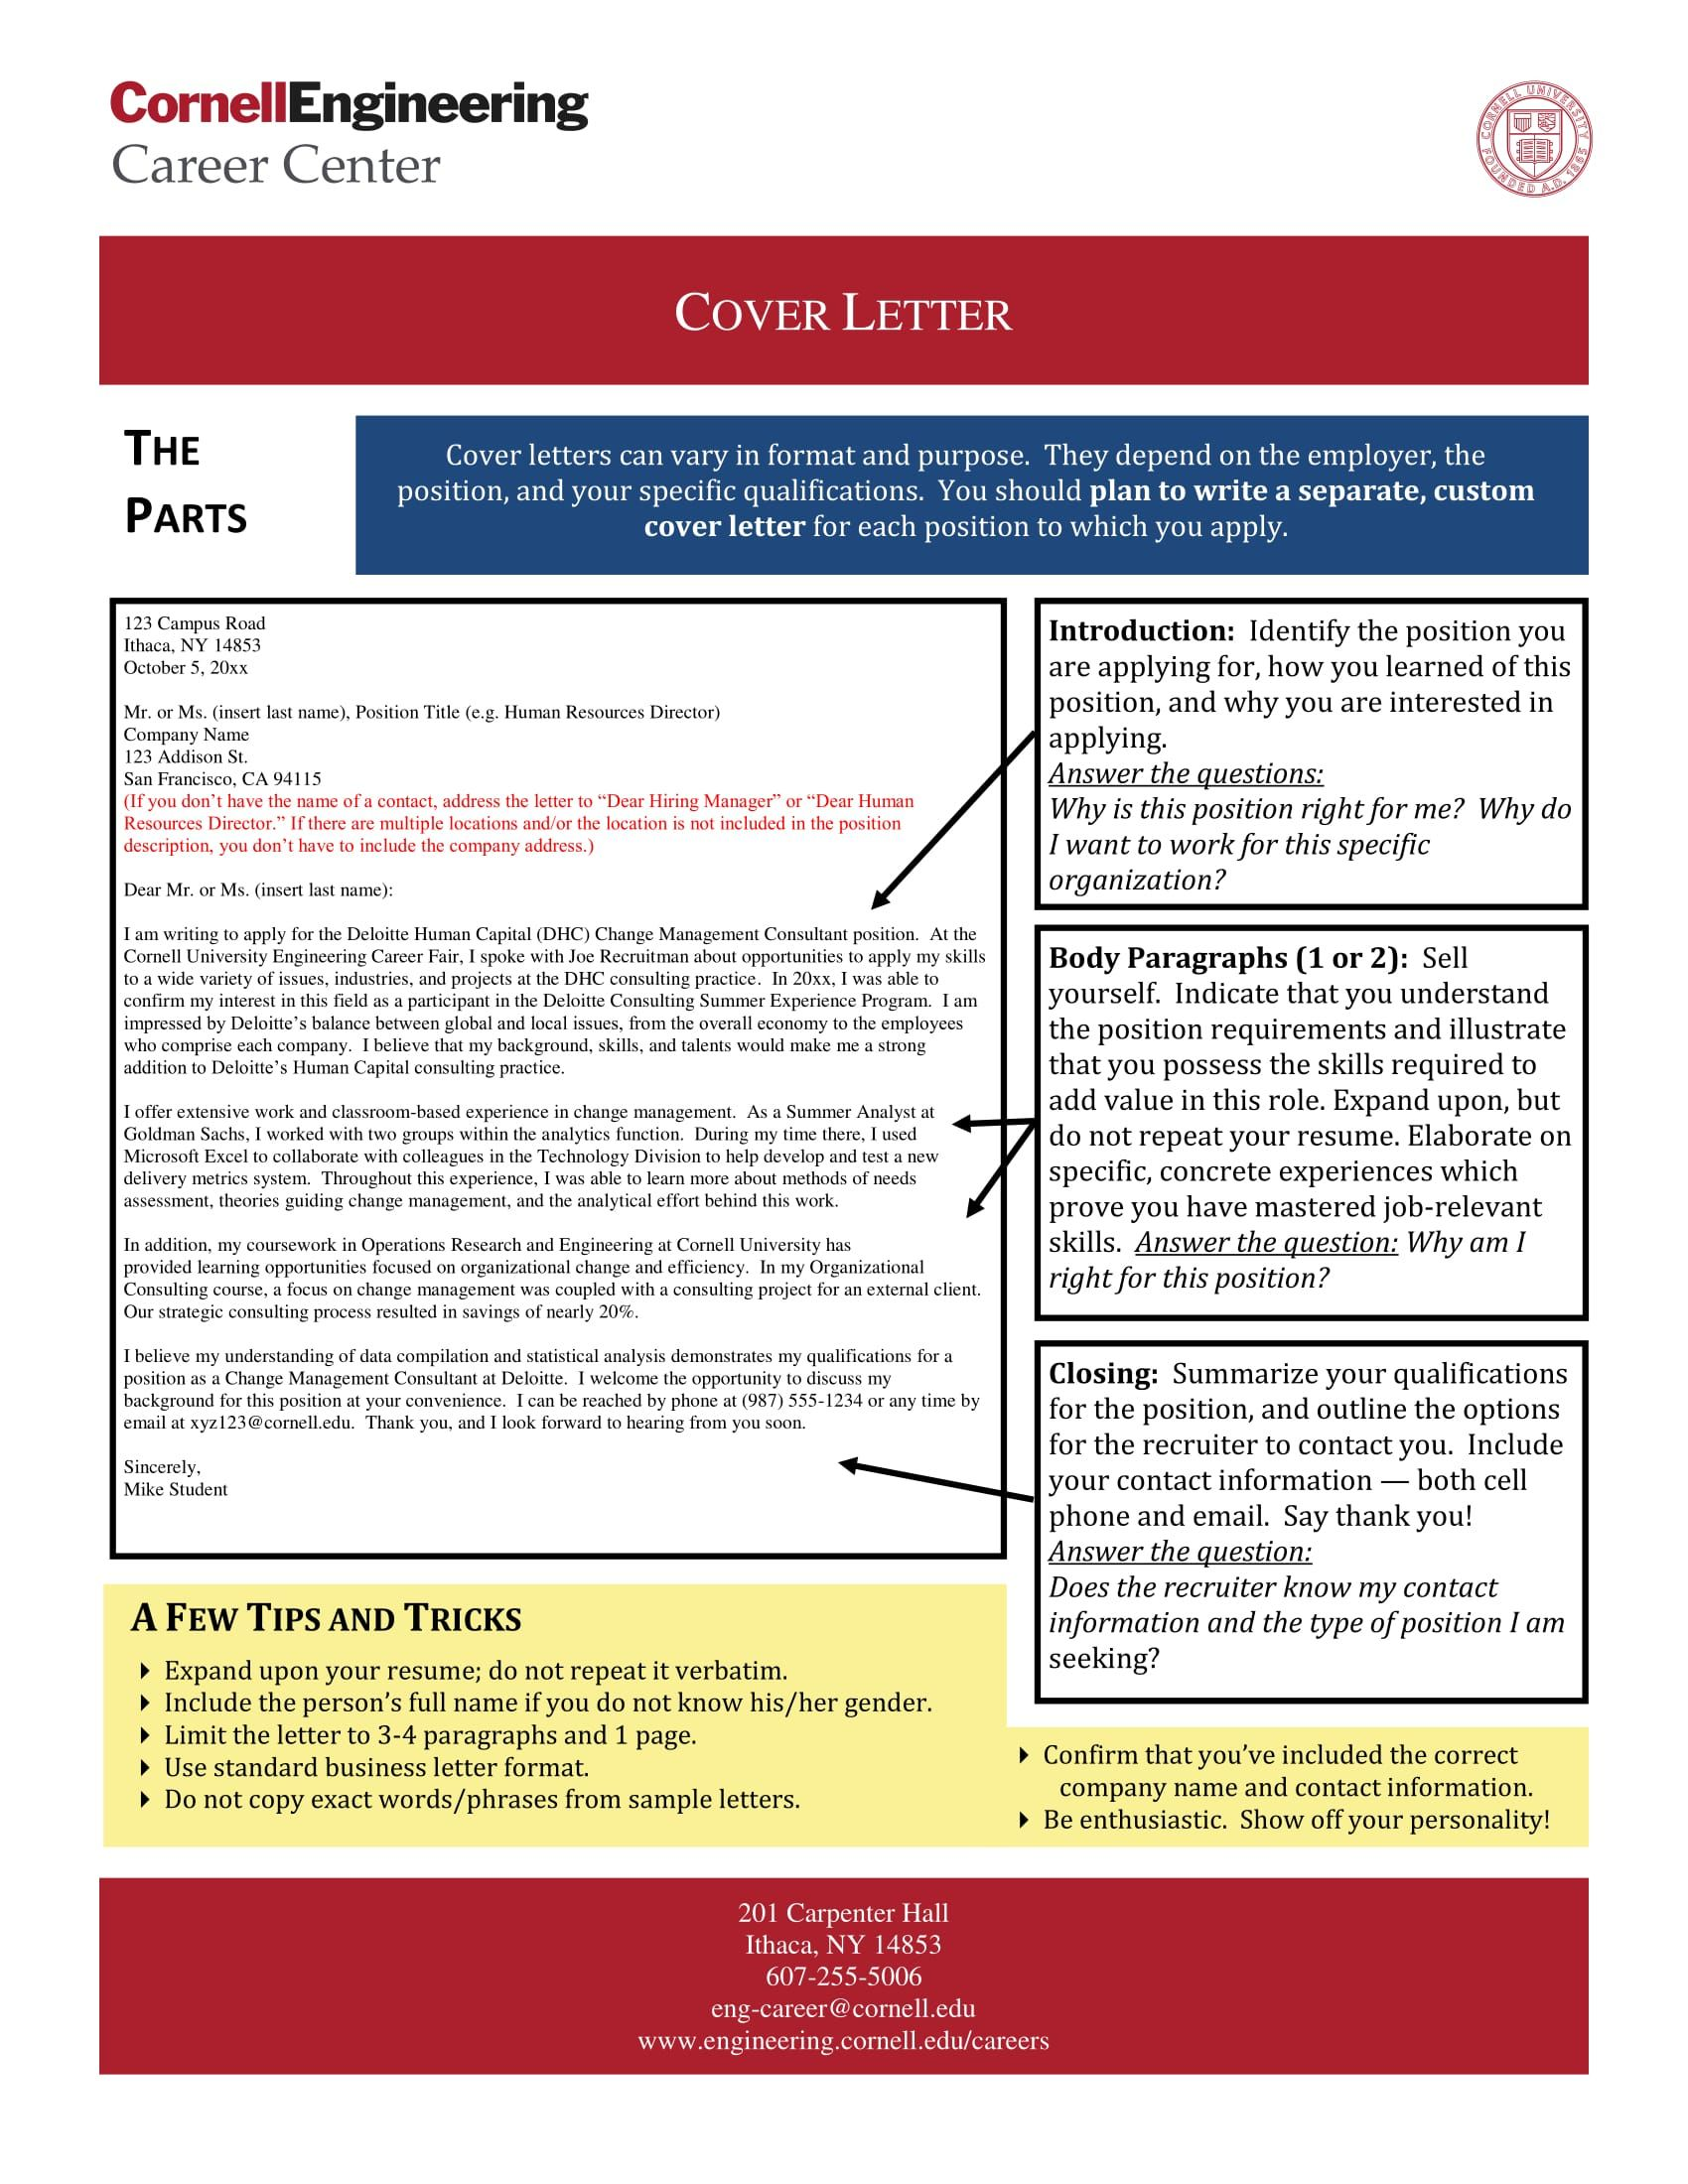 Concrete Form Carpenter Cover Letter 26 Attention Grabbing Cover Letter Attention Grabbing Cover